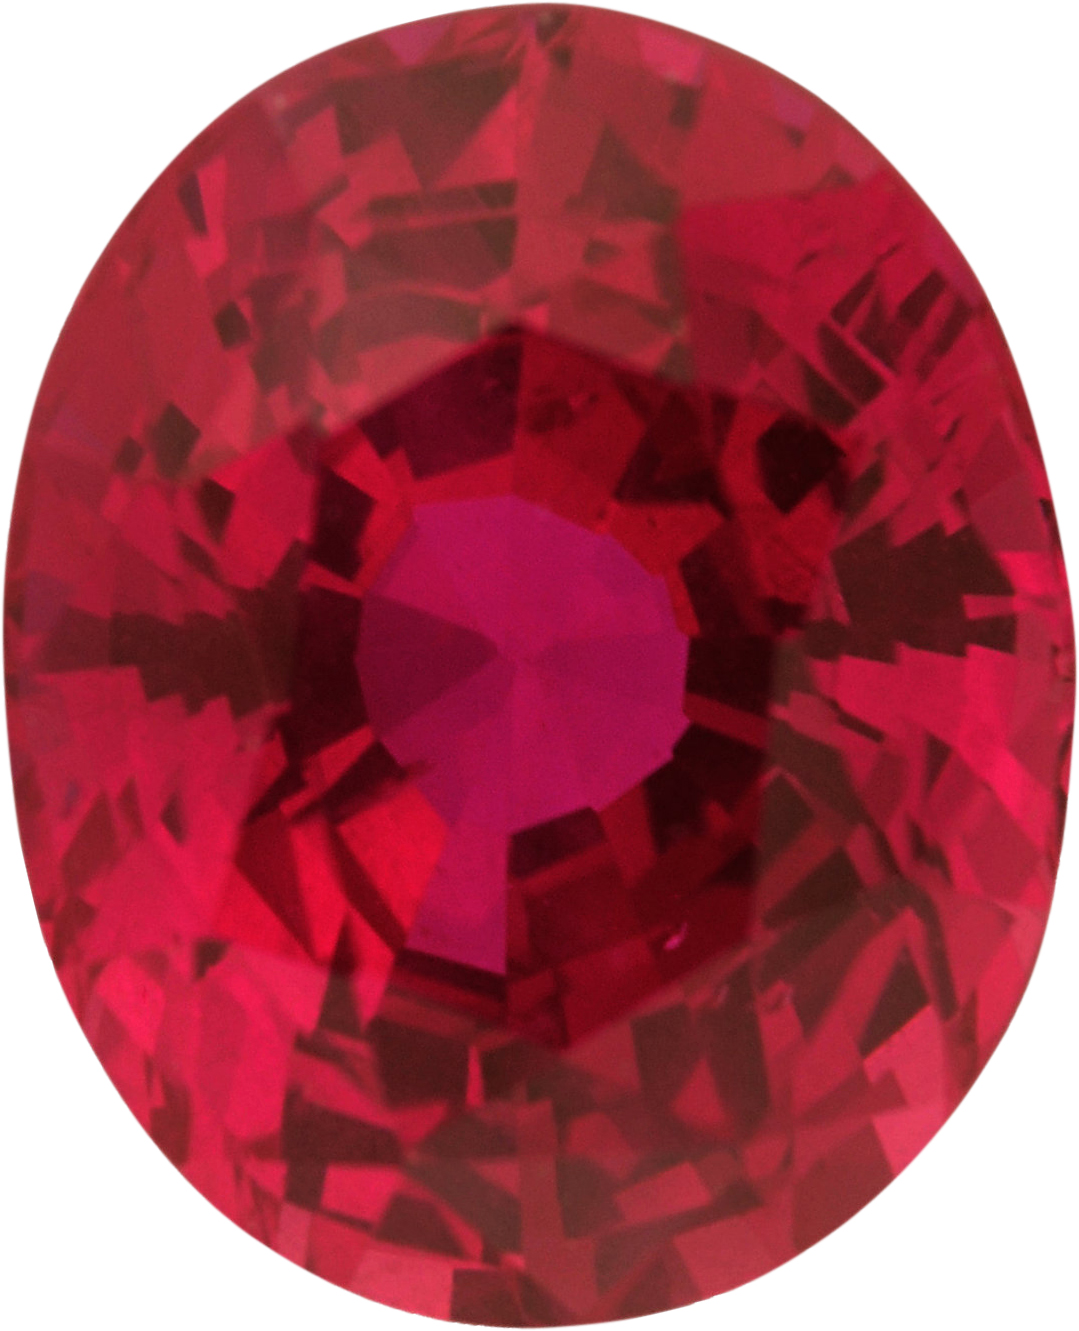 Great Deal on Oval Cut Loose Ruby Gem, Red Color, 8.04 x 6.51 mm, 2 carats